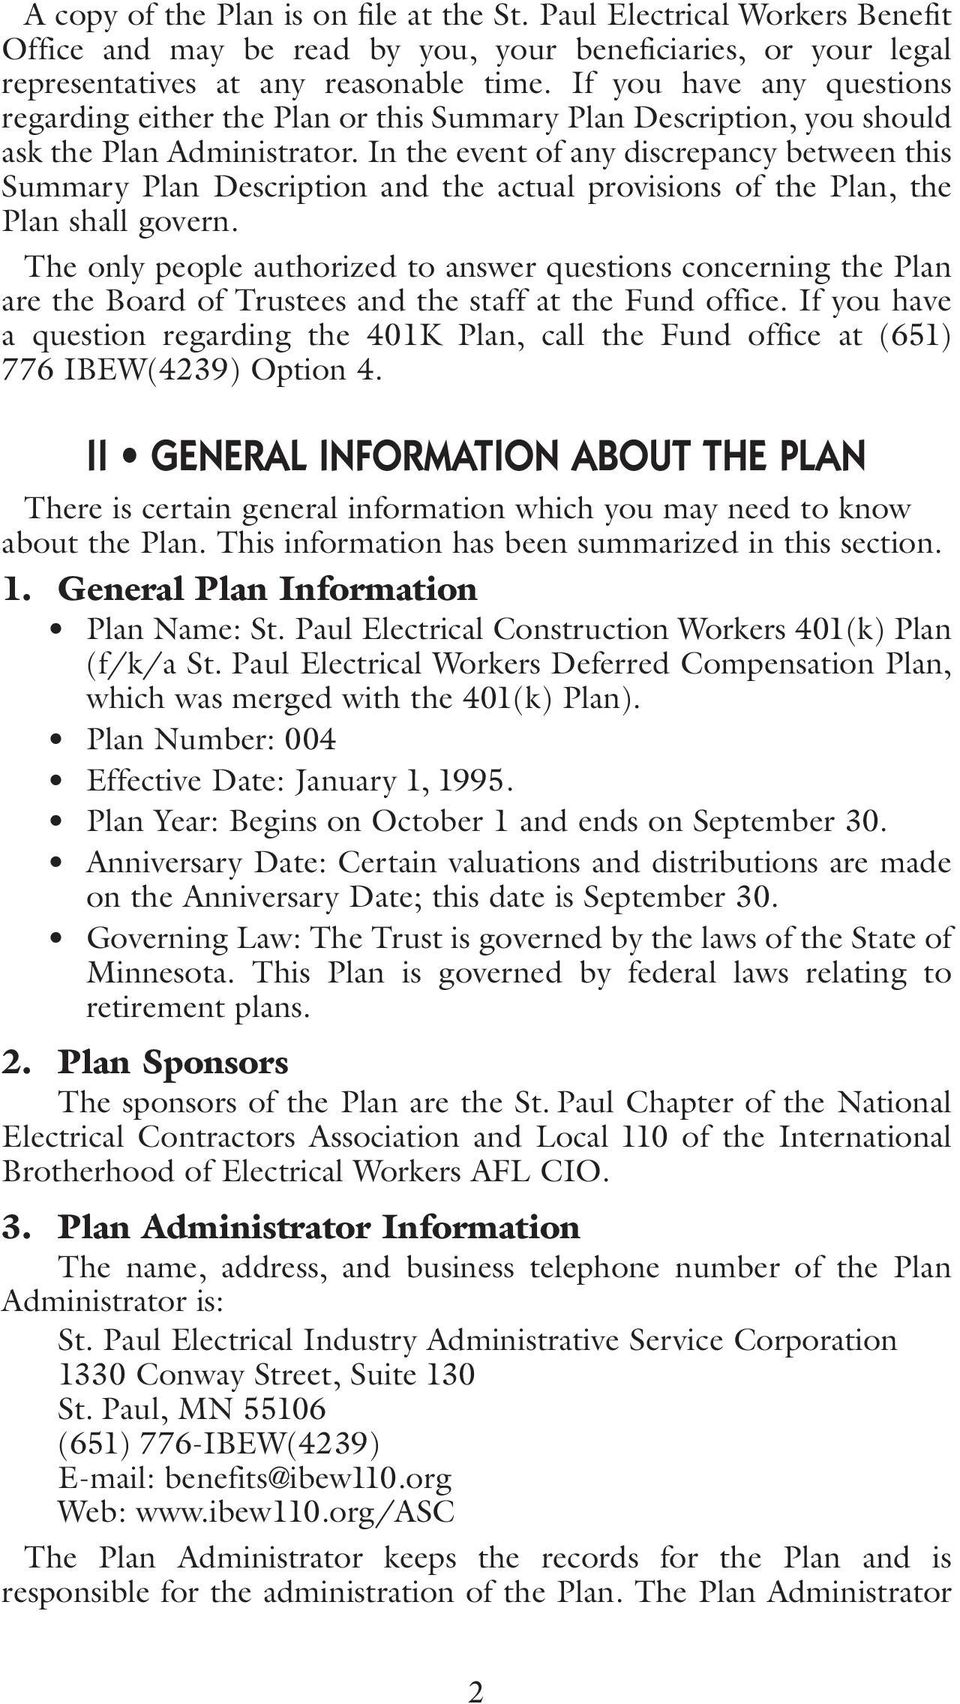 In the event of any discrepancy between this Summary Plan Description and the actual provisions of the Plan, the Plan shall govern.